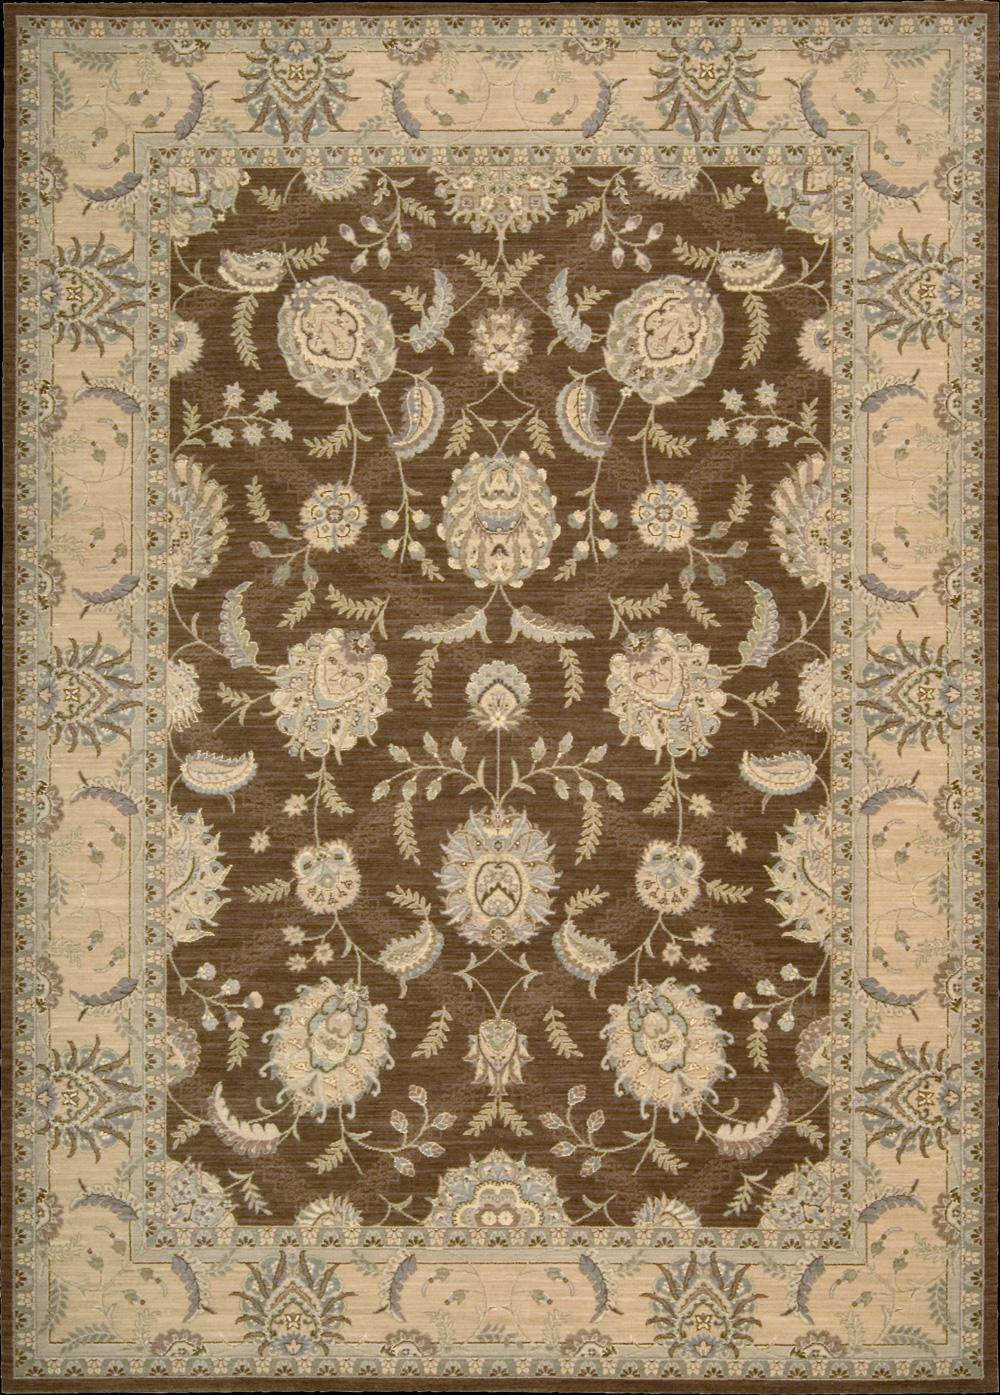 "Nourison Persian Empire Area Rug 7'9"" x 10'10"" - Item Number: 25527"